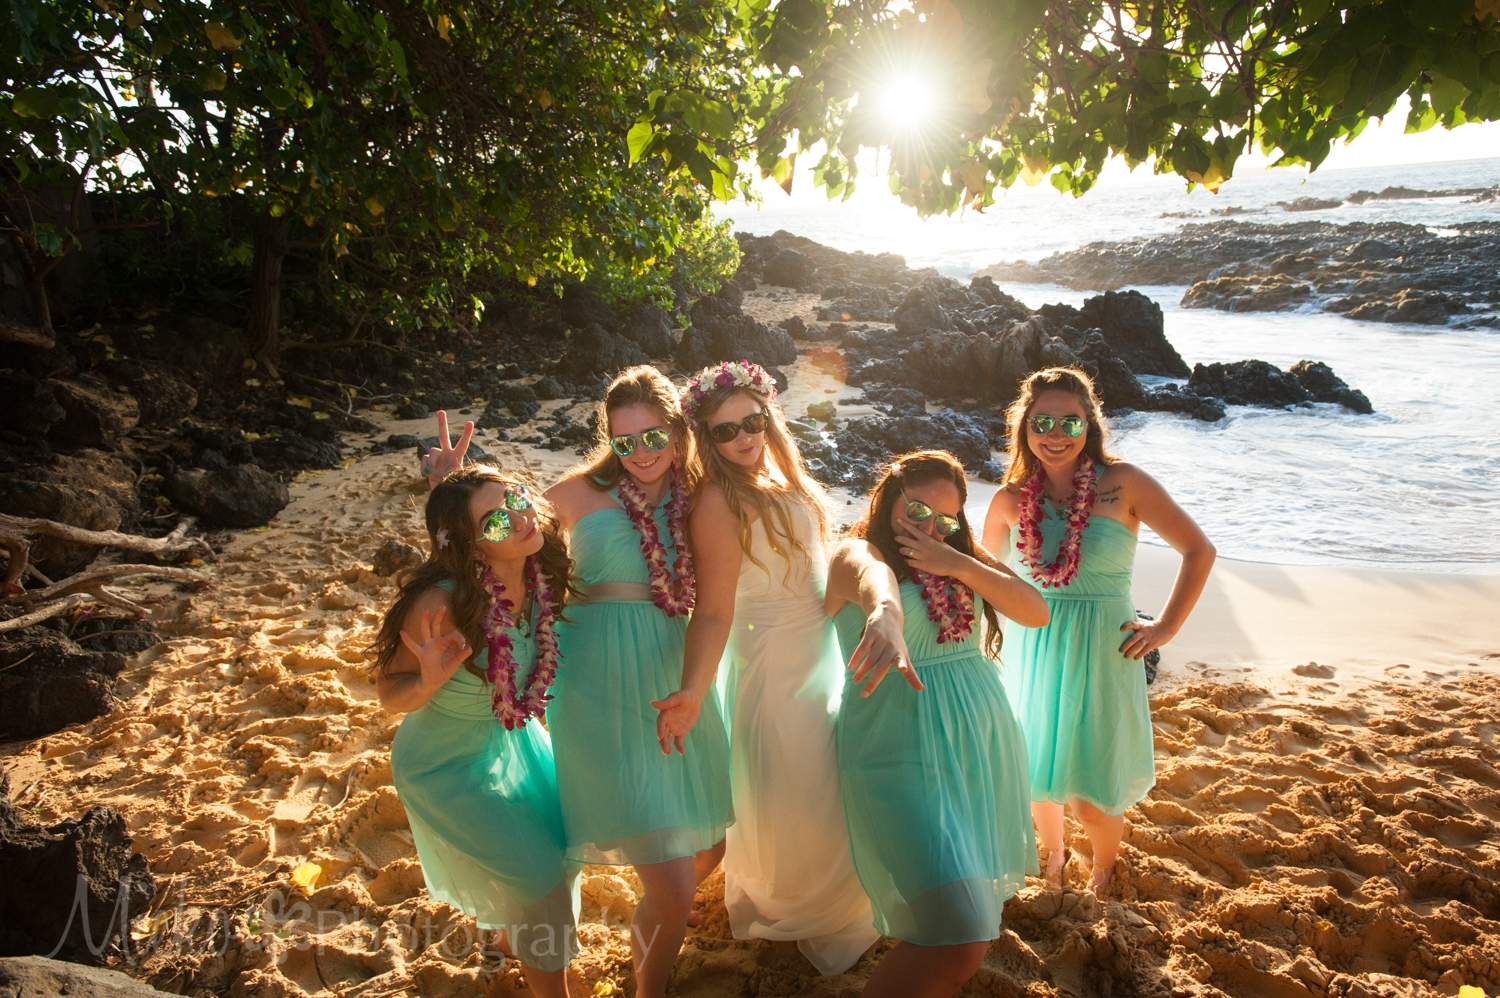 Wedding Photography at Secret Cove Beach, Makena, Maui.  Photography by Mieko Horikoshi.  日本人フォトグラファーによるハワイビーチウェディング撮影。